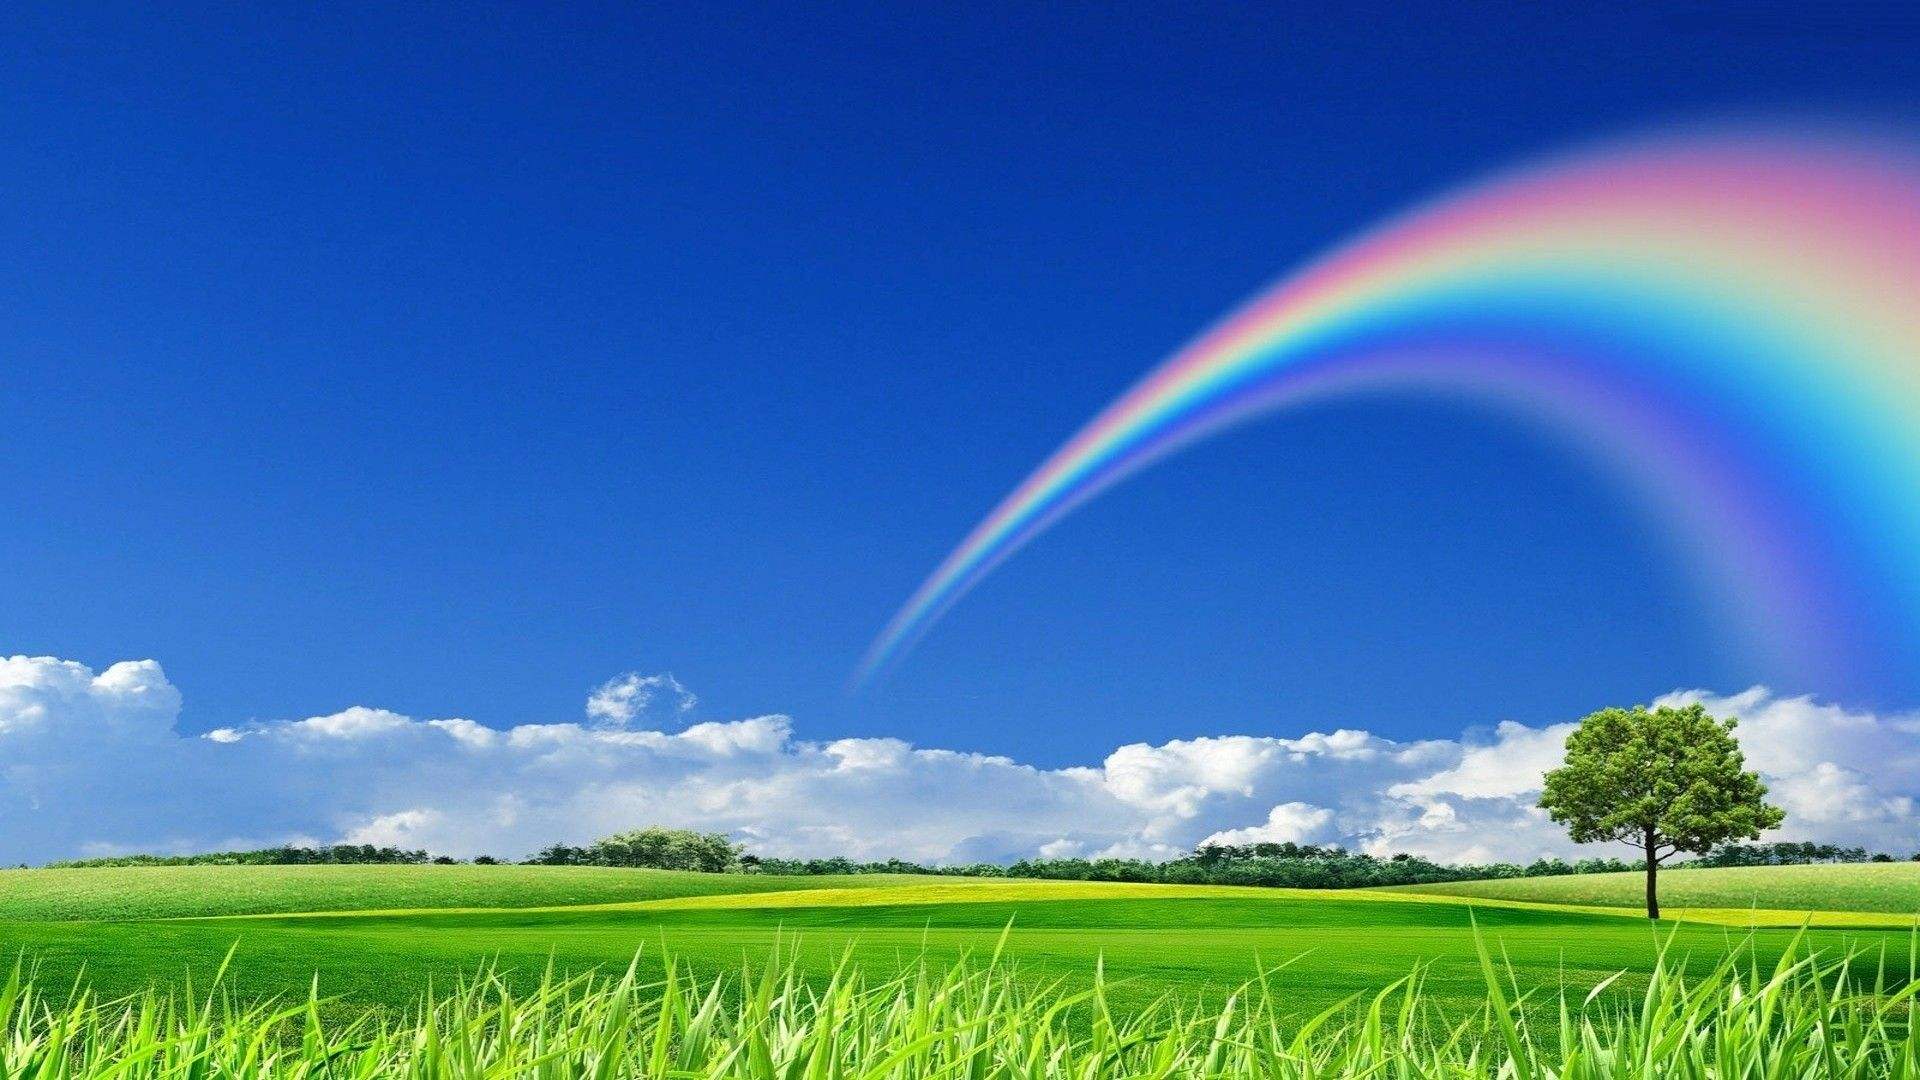 Rainbow Sky Wallpapers Top Free Rainbow Sky Backgrounds